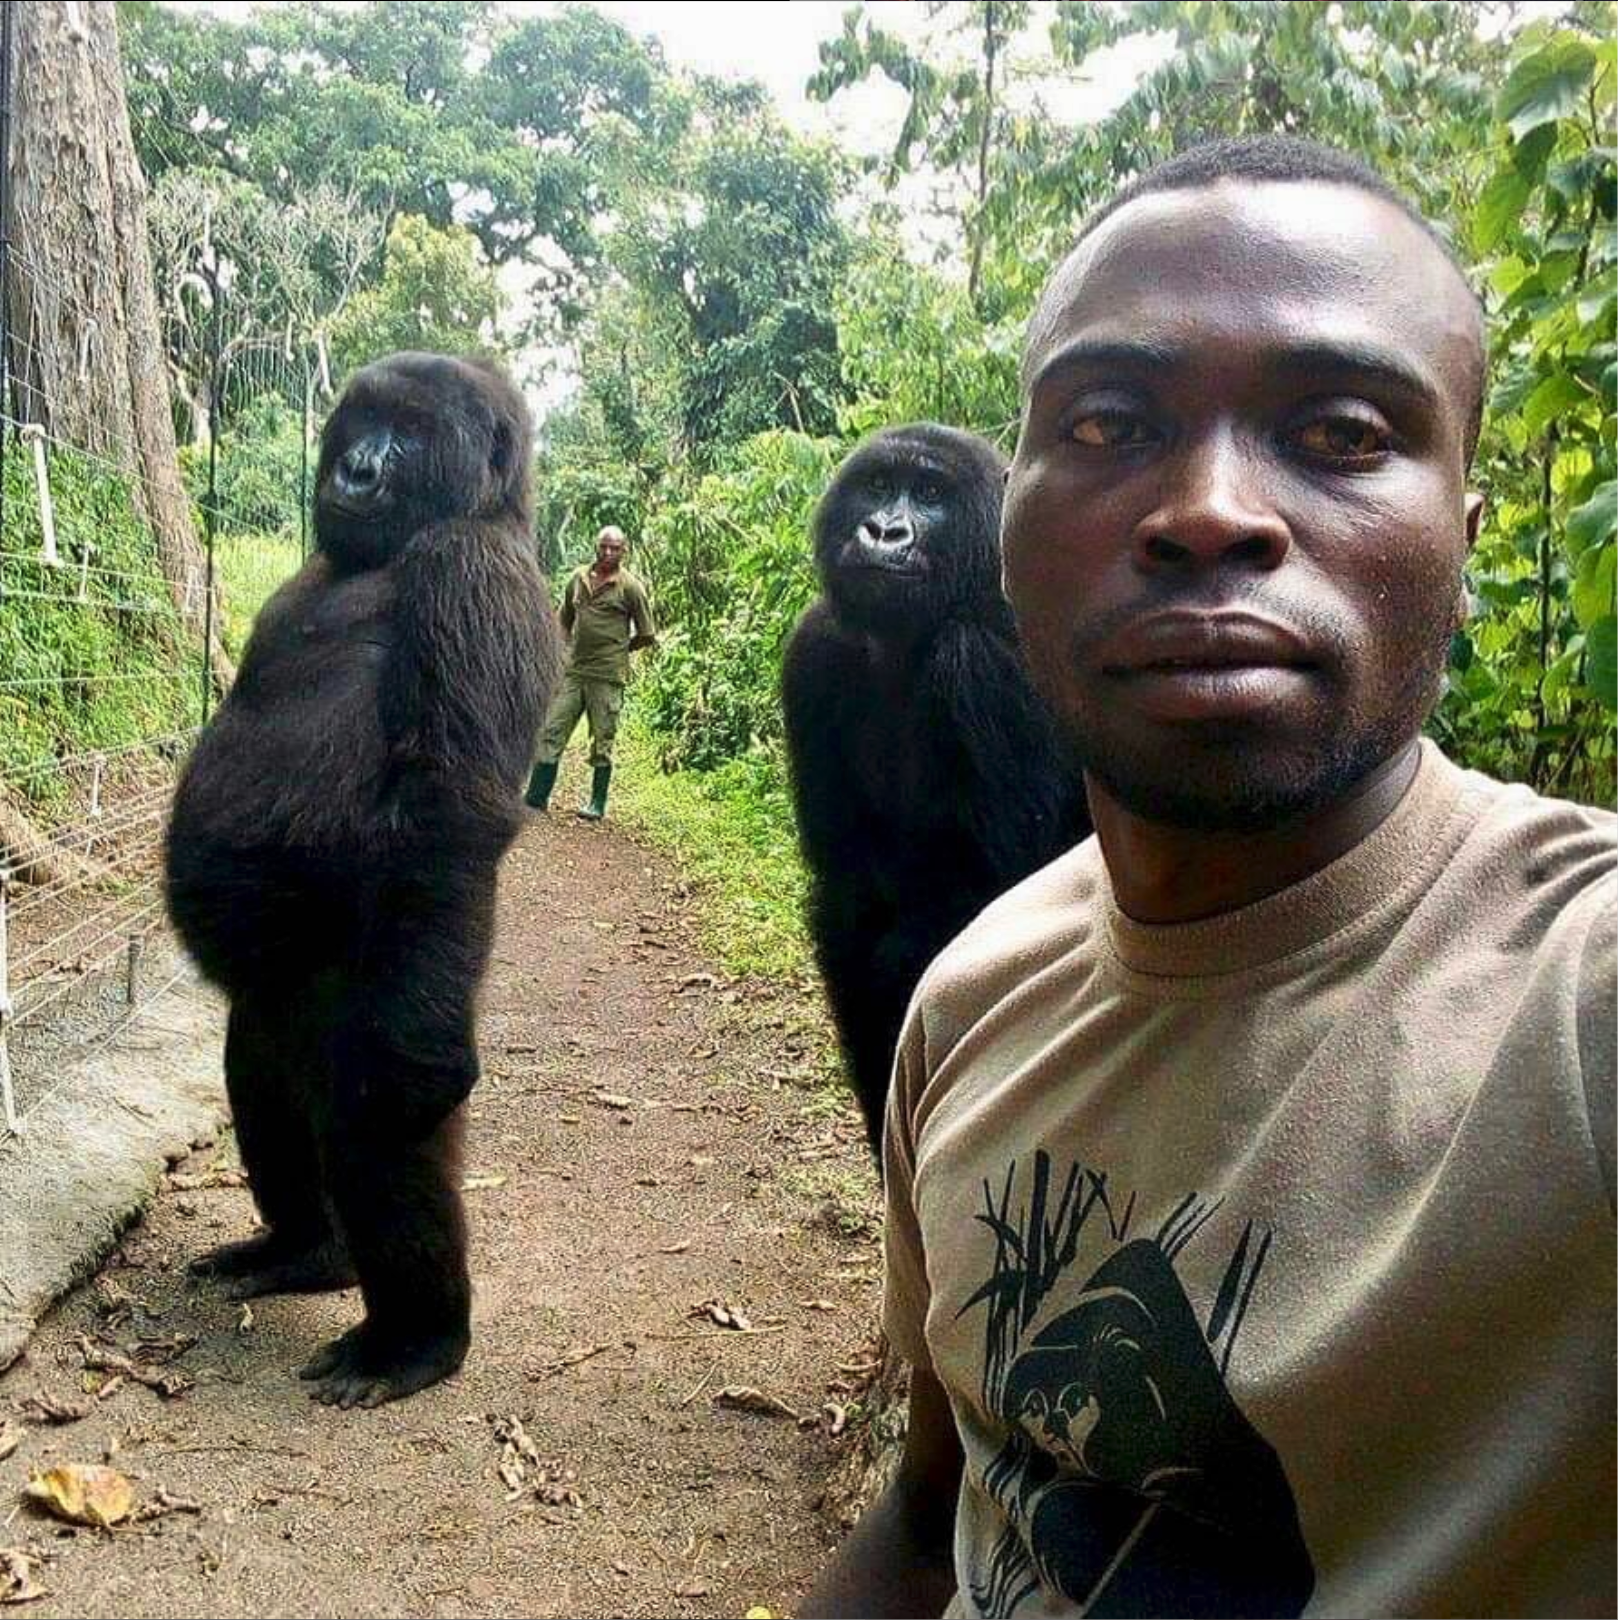 You might have recently seen caretakers Mathieu and Patrick's amazing selfie with female orphaned gorillas Ndakazi and Ndeze inside the Senkwekwe center at Virunga National Park. We've received dozens of messages about the photo. YES, it's real! Those gorilla gals are always acting cheeky so this was the perfect shot of their true personalities! Also, it's no surprise to see these girls on their two feet either—most primates are comfortable walking upright (bipedalism) for short bursts of time. Guys, if you shared our gorilla selfie post, please share our Earth Day posts as well! Conserving Virunga's amazing wildlife is a constant challenge for the Park and our work wouldn't be possible without your support. Matching funds have been pledged on every donation to the Park today, up to a total of $25,000—giving us the opportunity to raise $50,000 for Virunga! Visit virunga.org/donate or click the link in our bio to get involved and keep sharing our posts! Thank you! *We want to emphasize that these gorillas are in an enclosed sanctuary for orphans to which they have lived since infancy. The caretakers at Senkwekwe take great care to not put the health of the gorillas in danger. These are exceptional circumstances in which the photo was taken. It is never permitted to approach a gorilla in the wild.